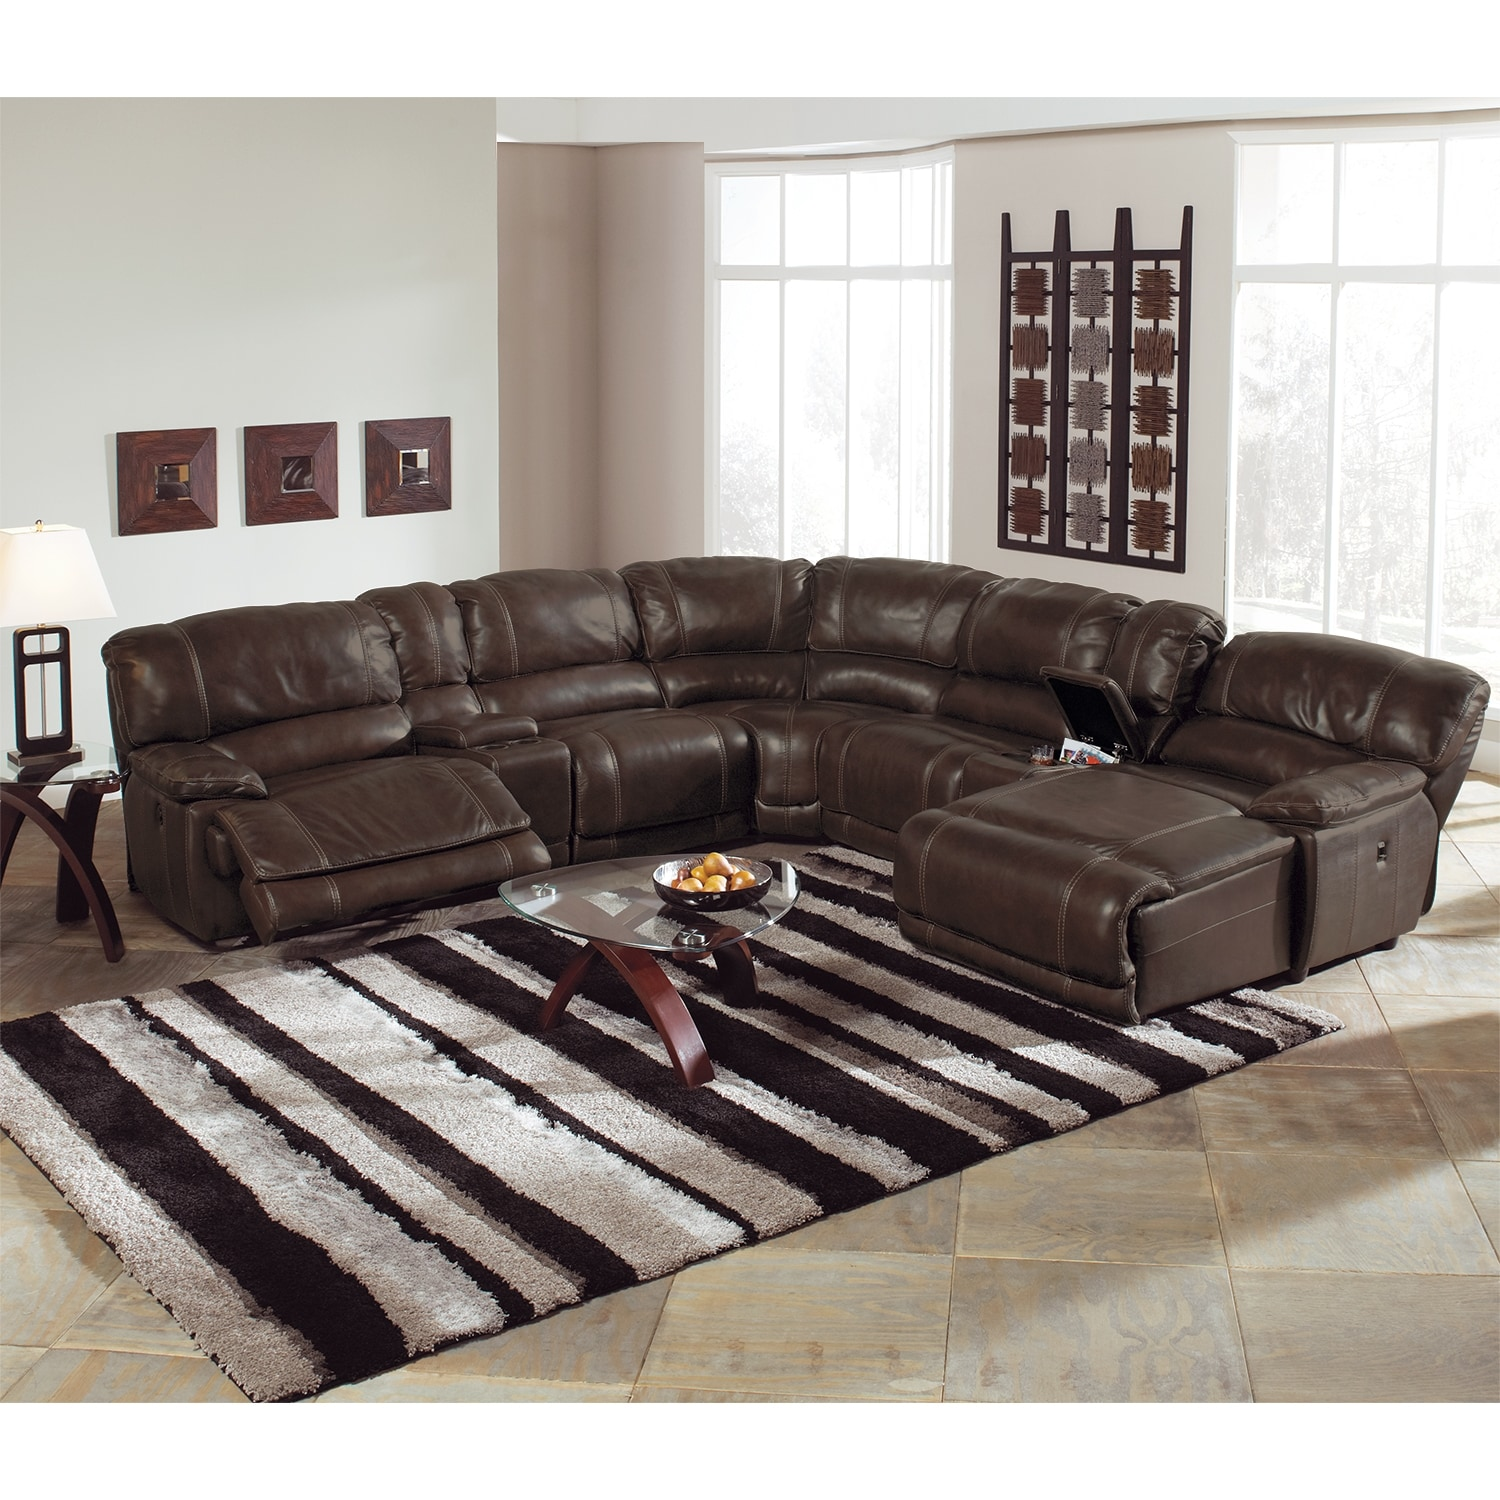 St Malo 6 Piece Power Reclining Sectional With Right Facing Chaise Brown Value City